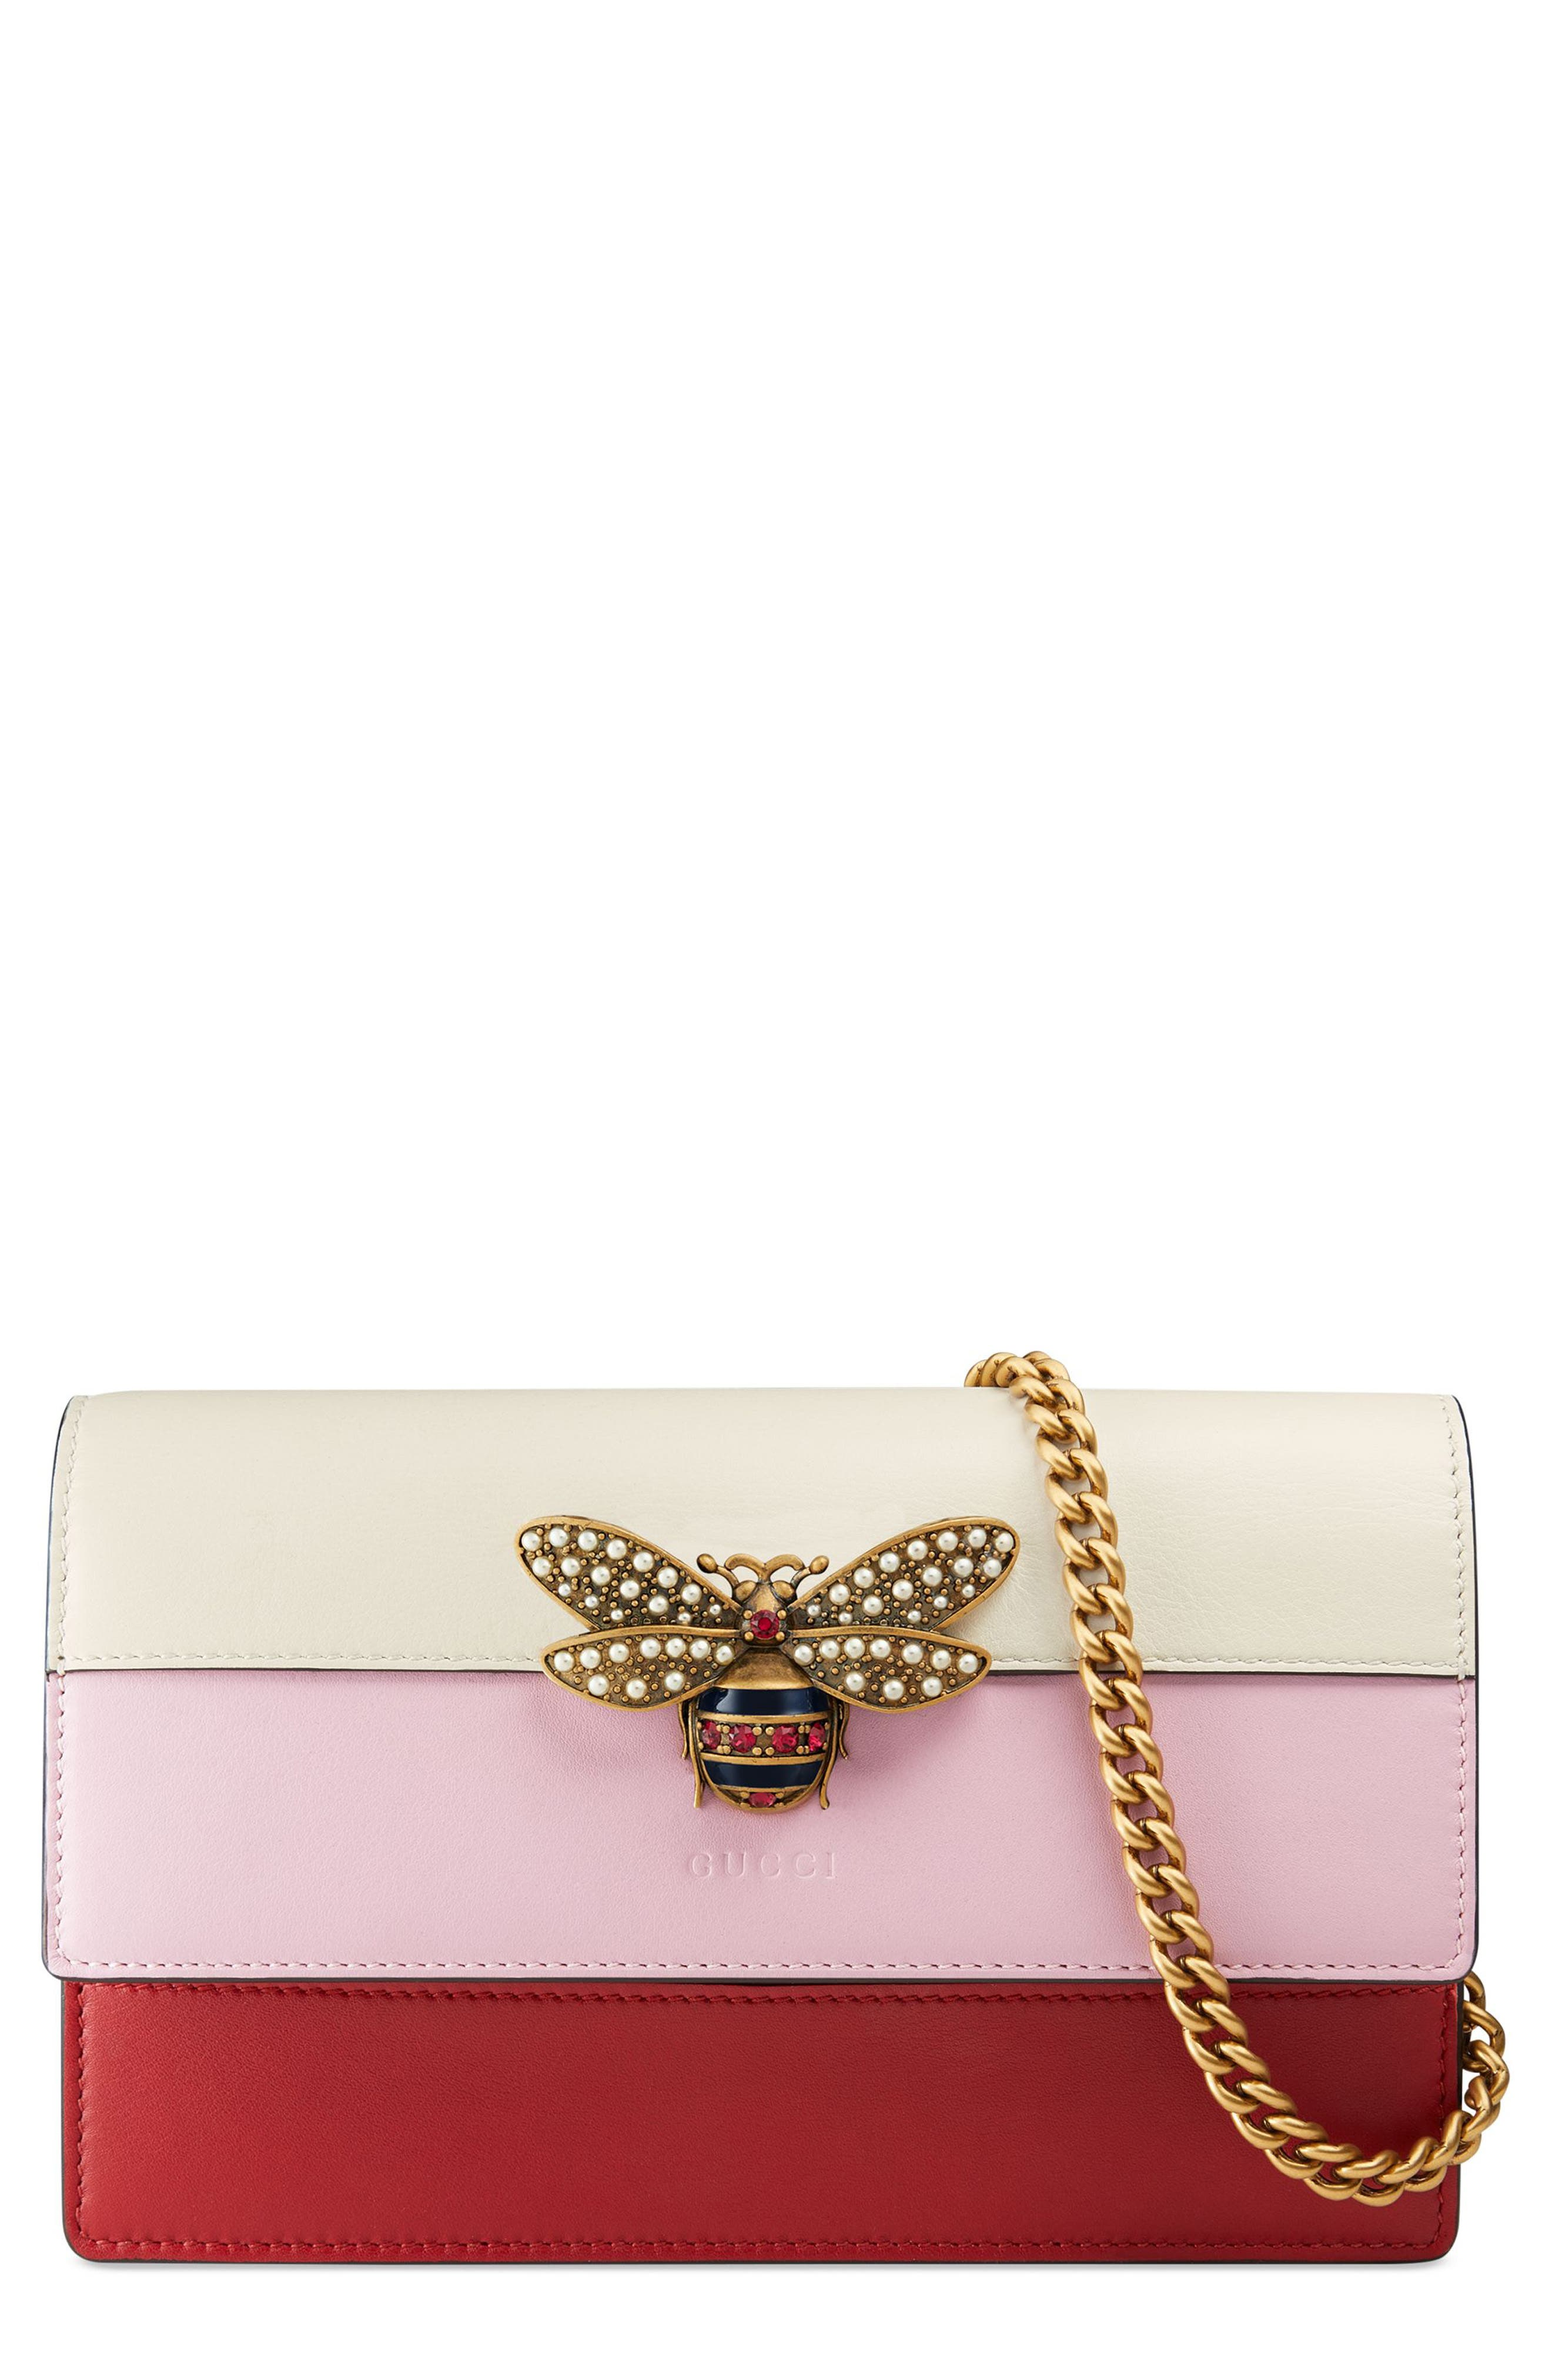 Main Image - Gucci Mini Bee Multistripe Leather Shoulder Bag